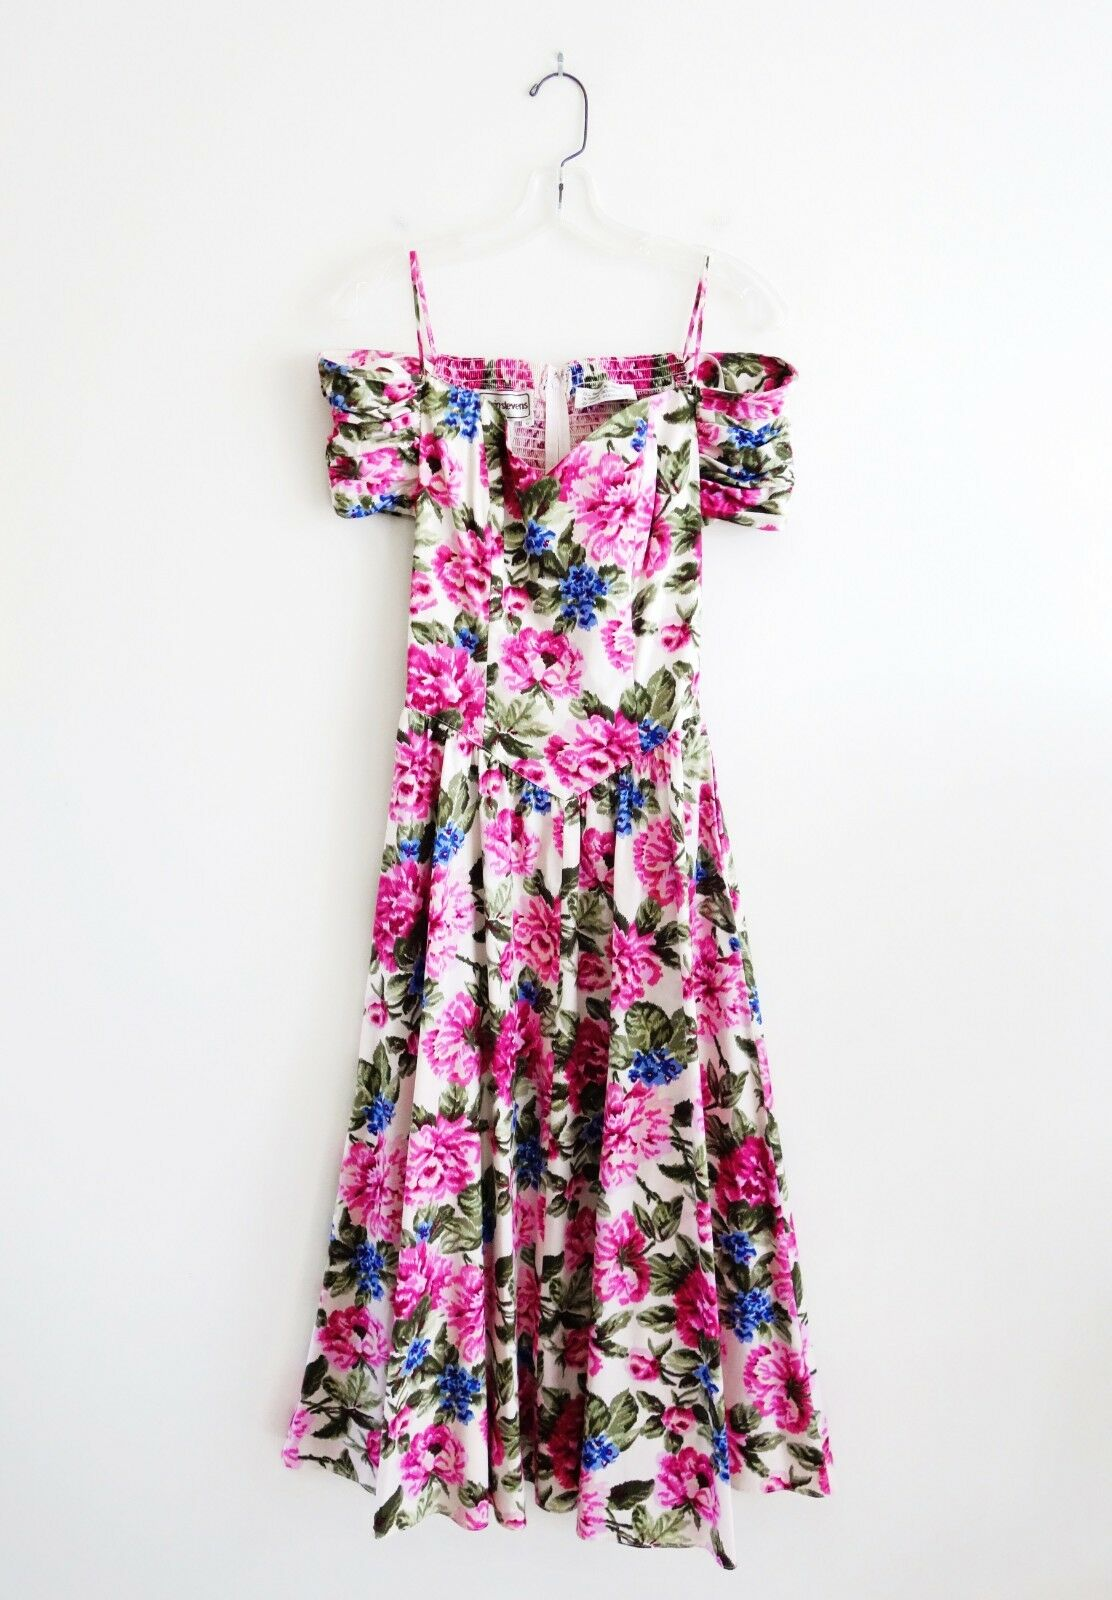 Vintage 80s Karin Stevens Pink Floral Off Shoulder Midi Dress size 6